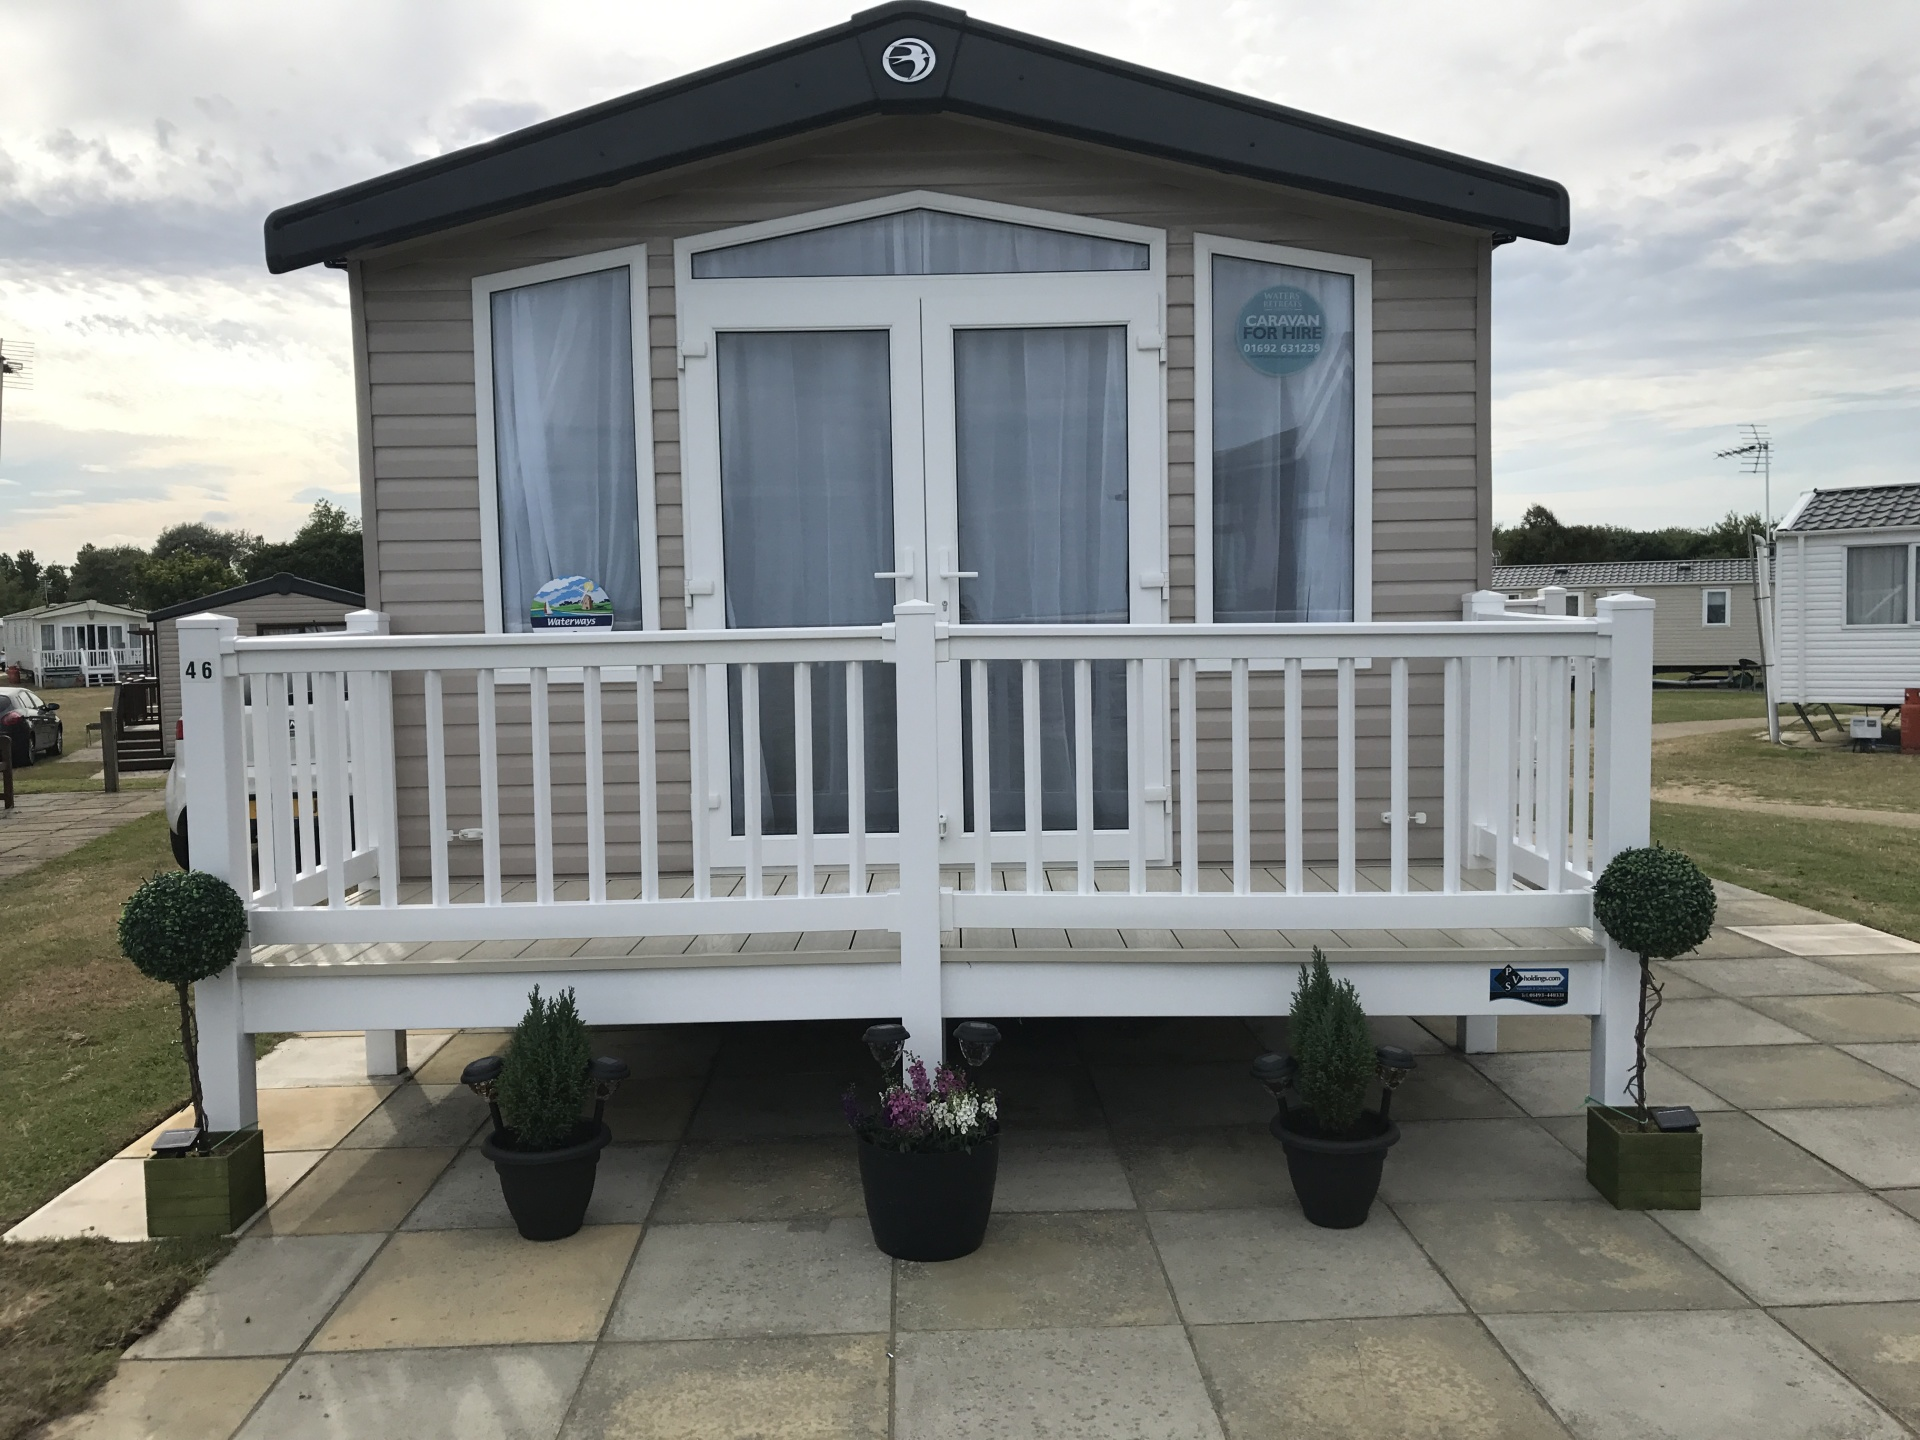 Waterways 6 - Waters' Retreats @Hopton - Haven Hopton Holiday Village